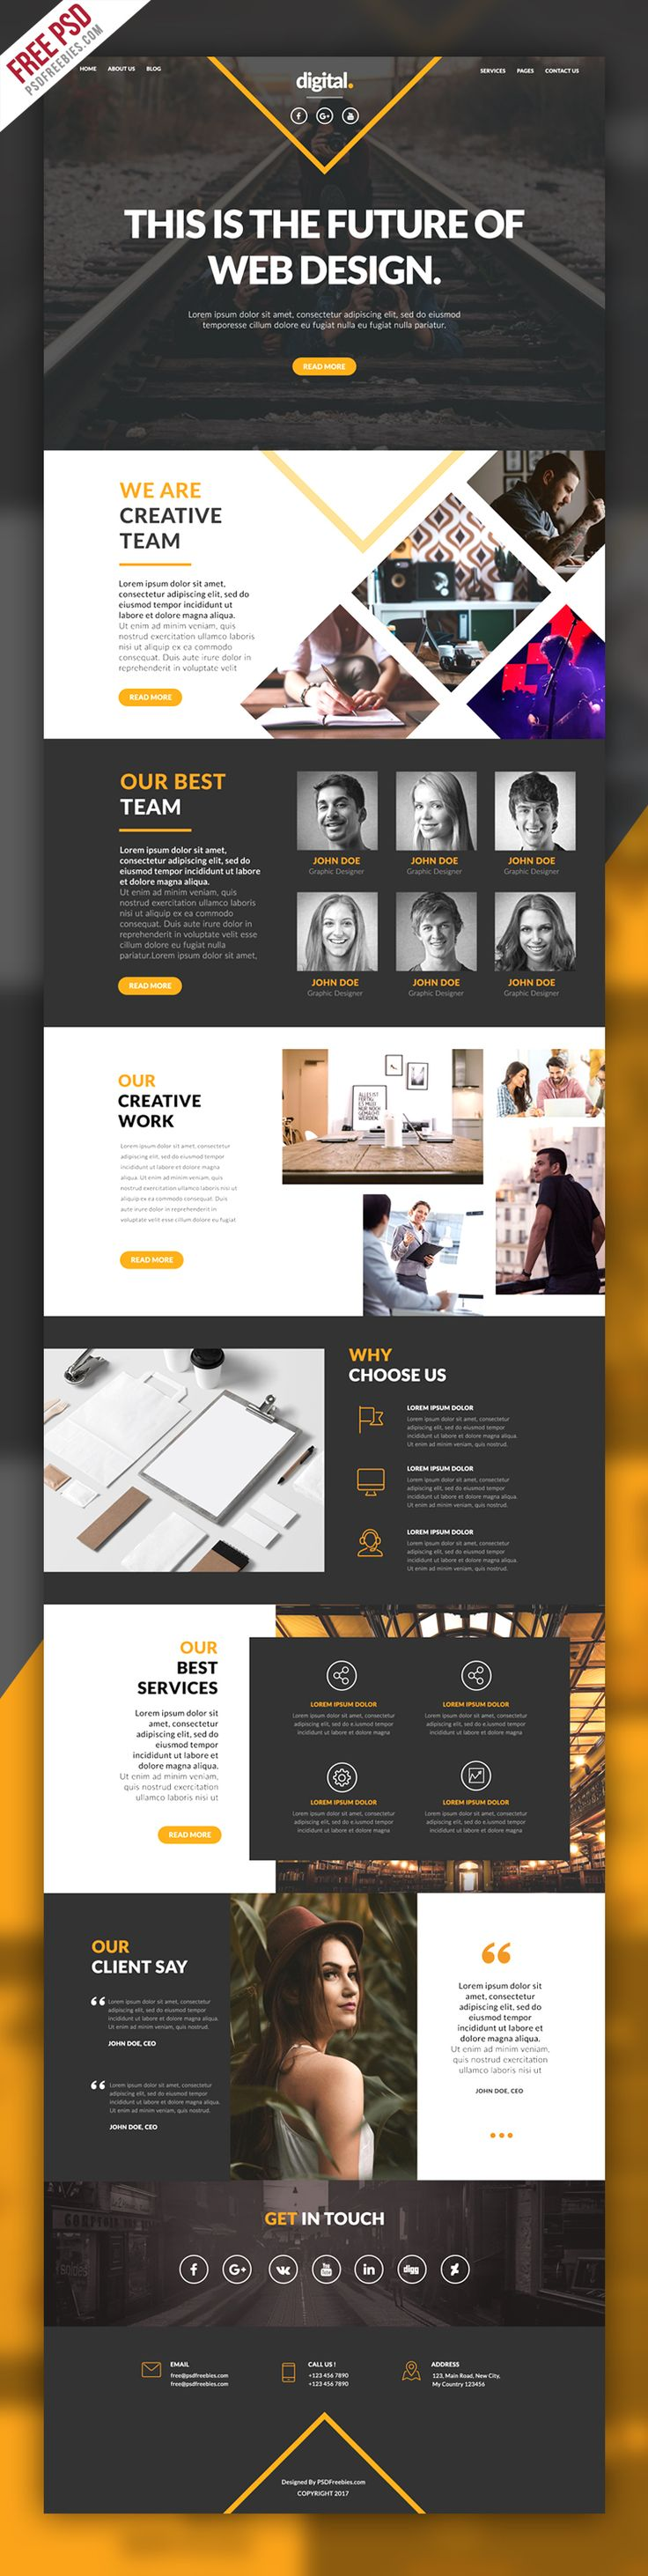 45 best Free Web Templates images on Pinterest | Free web ...